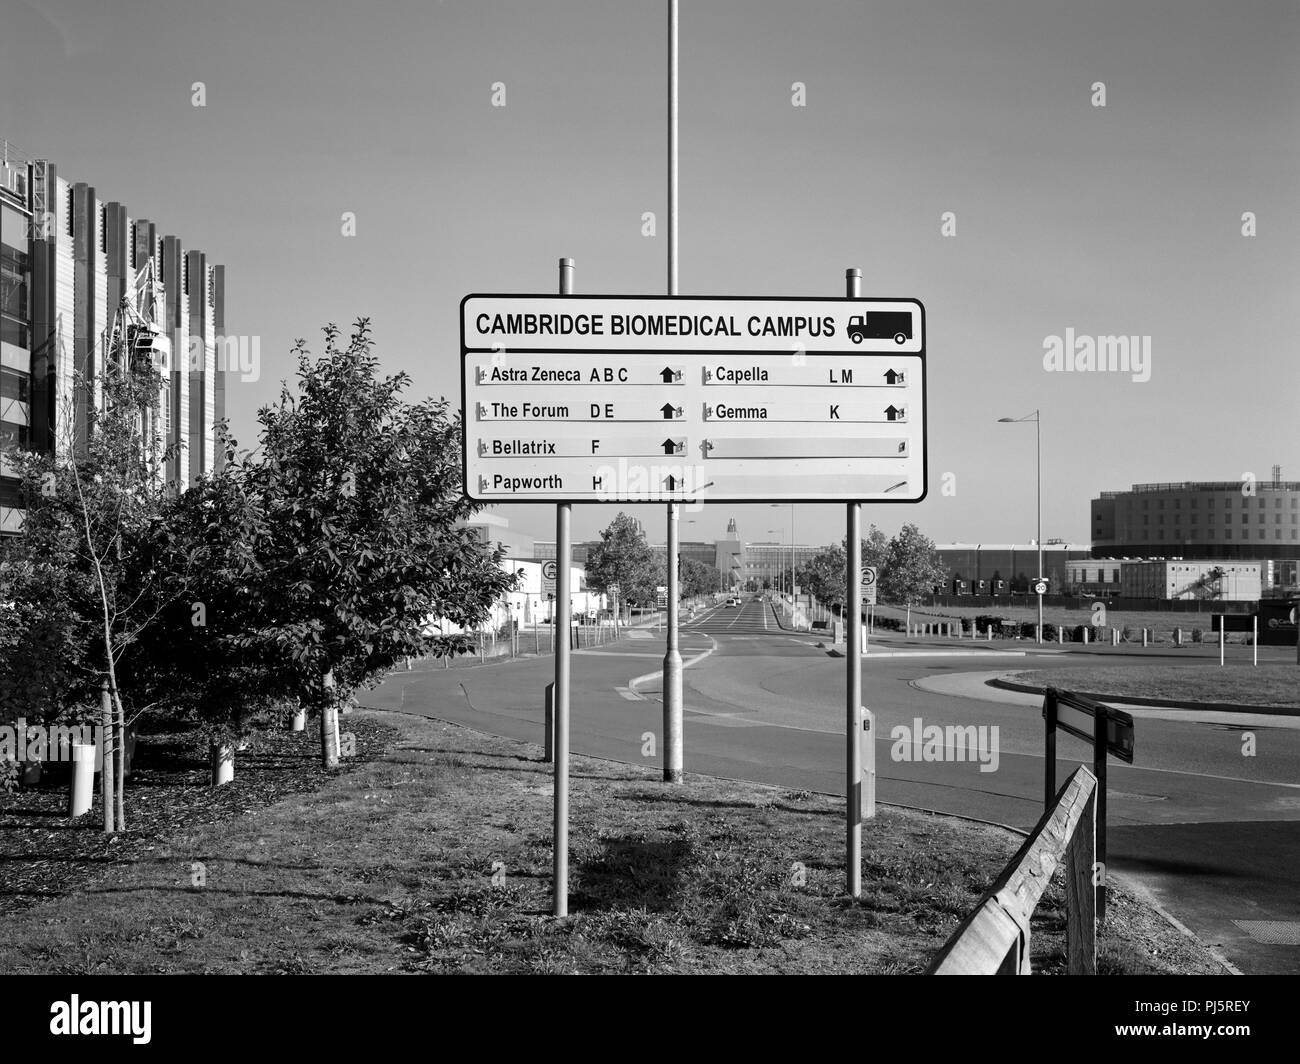 Direction sign for delivery vehicles at the Cambridge Biomedical Campus - Stock Image